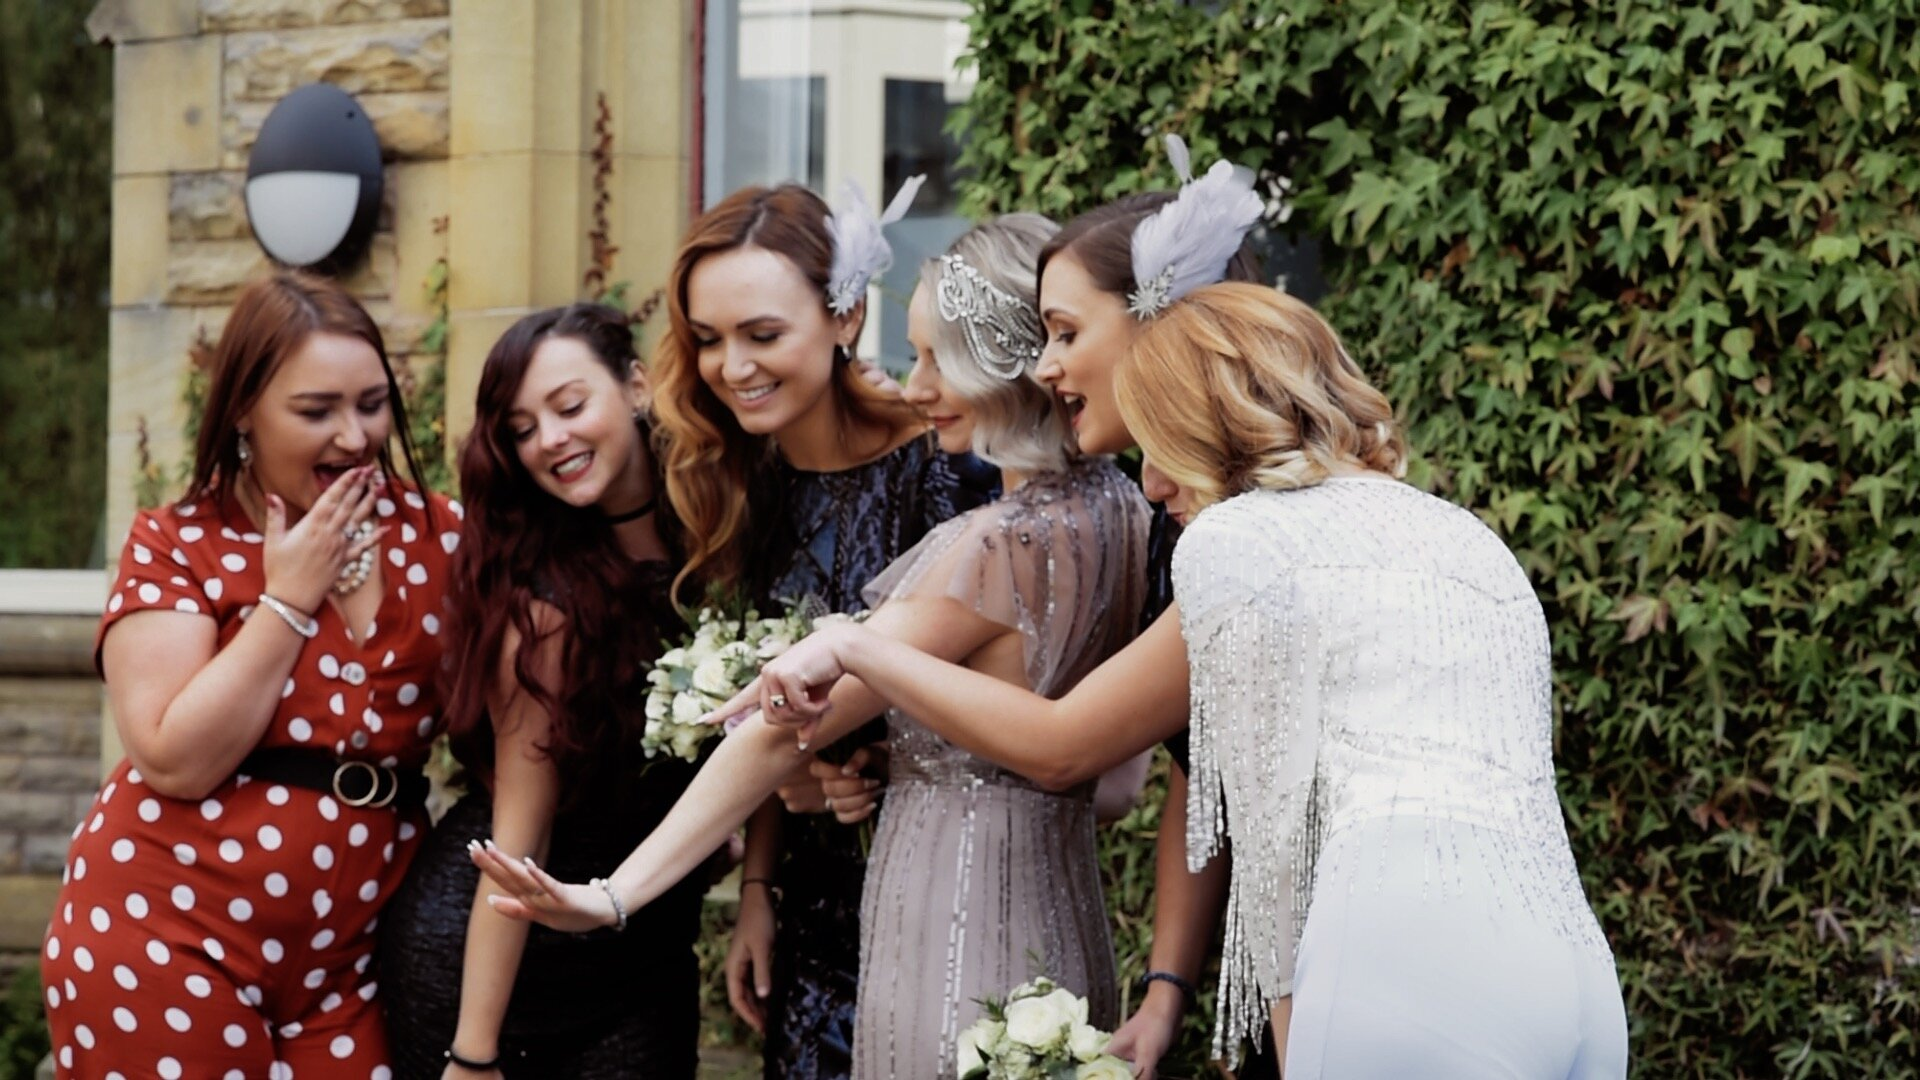 The bride having a picture taken with her bridesmaids and friends. They are all looking at her wedding ring and pointing in shock to the fact that she is now officially married.